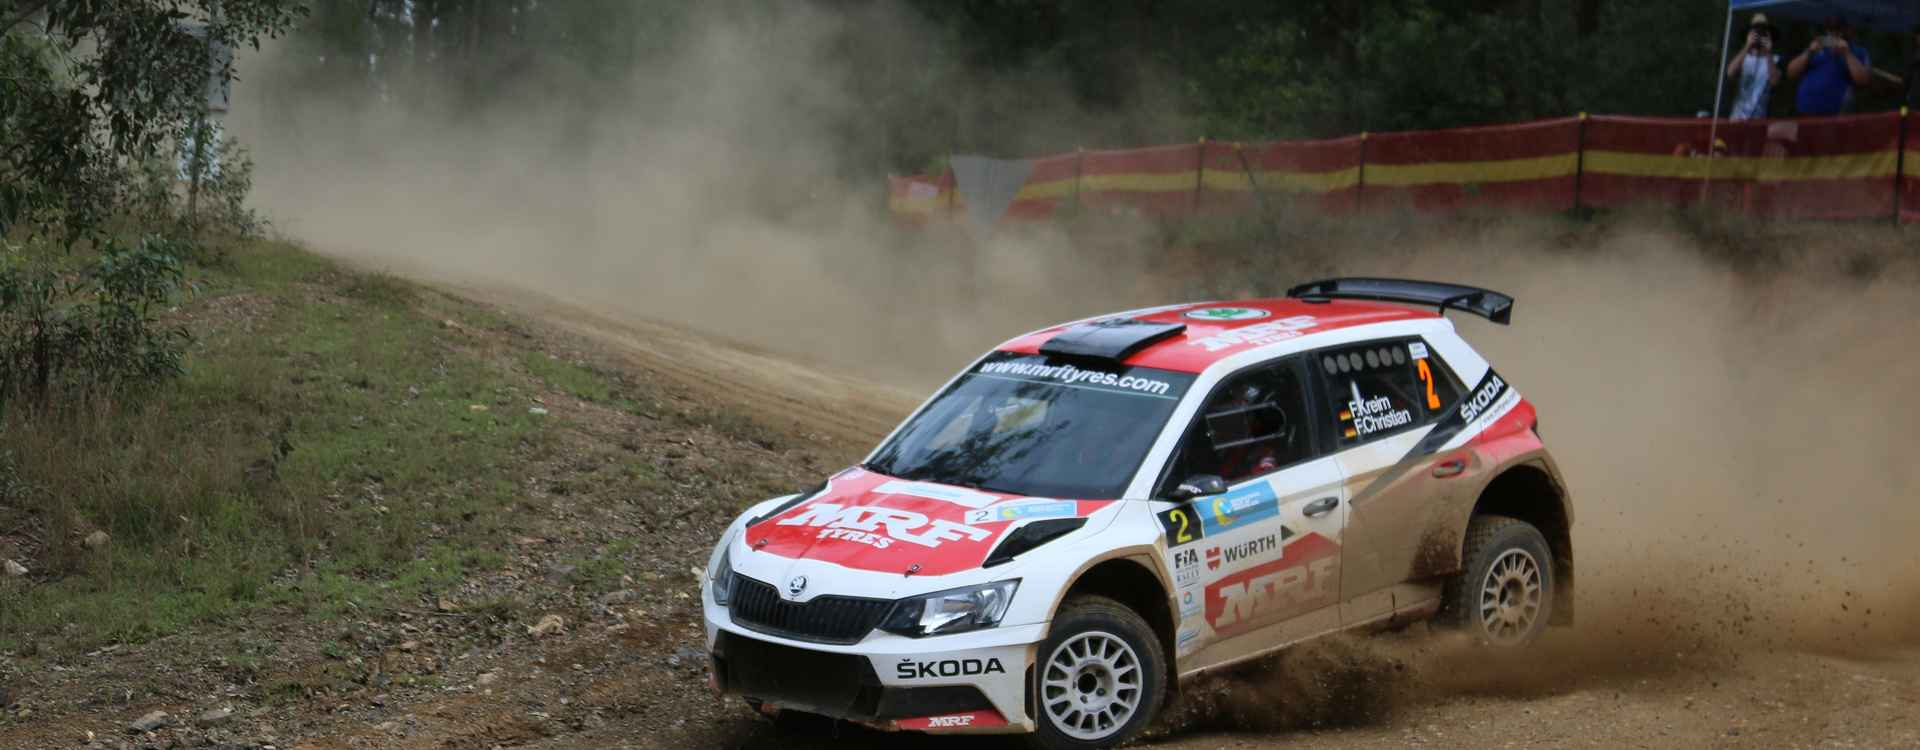 PHOTO: ŠKODA MRF team at the International Rally of Queensland